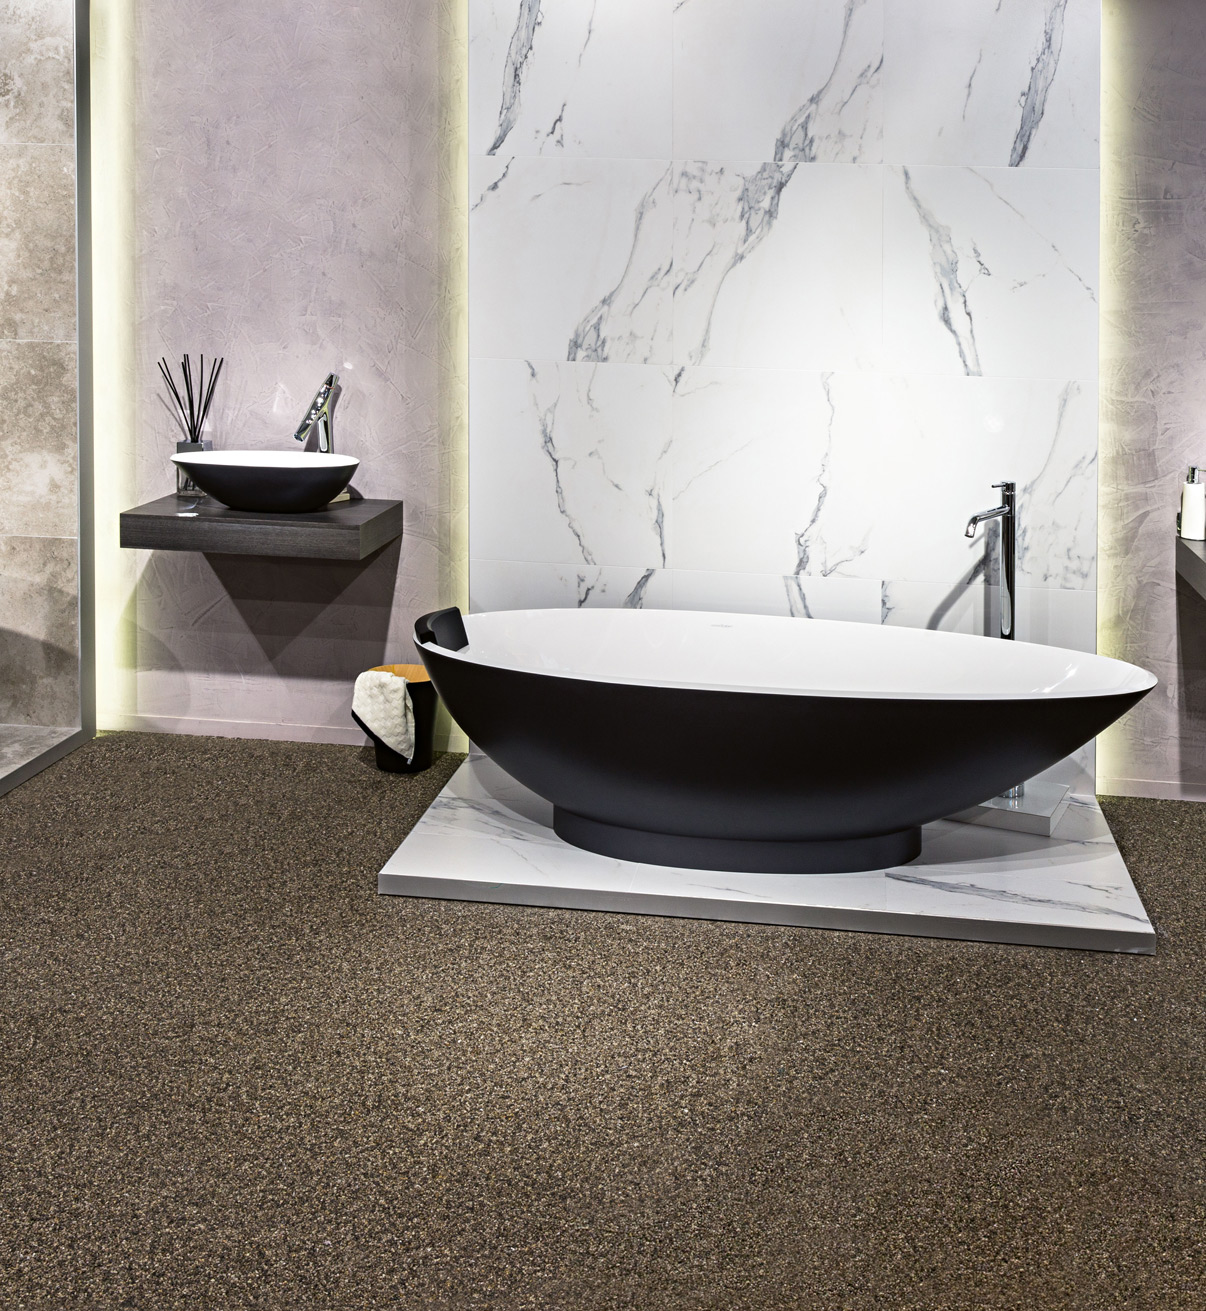 Bathe In Beauty With Victoria + Albert Baths At Domayne - Domayne ...